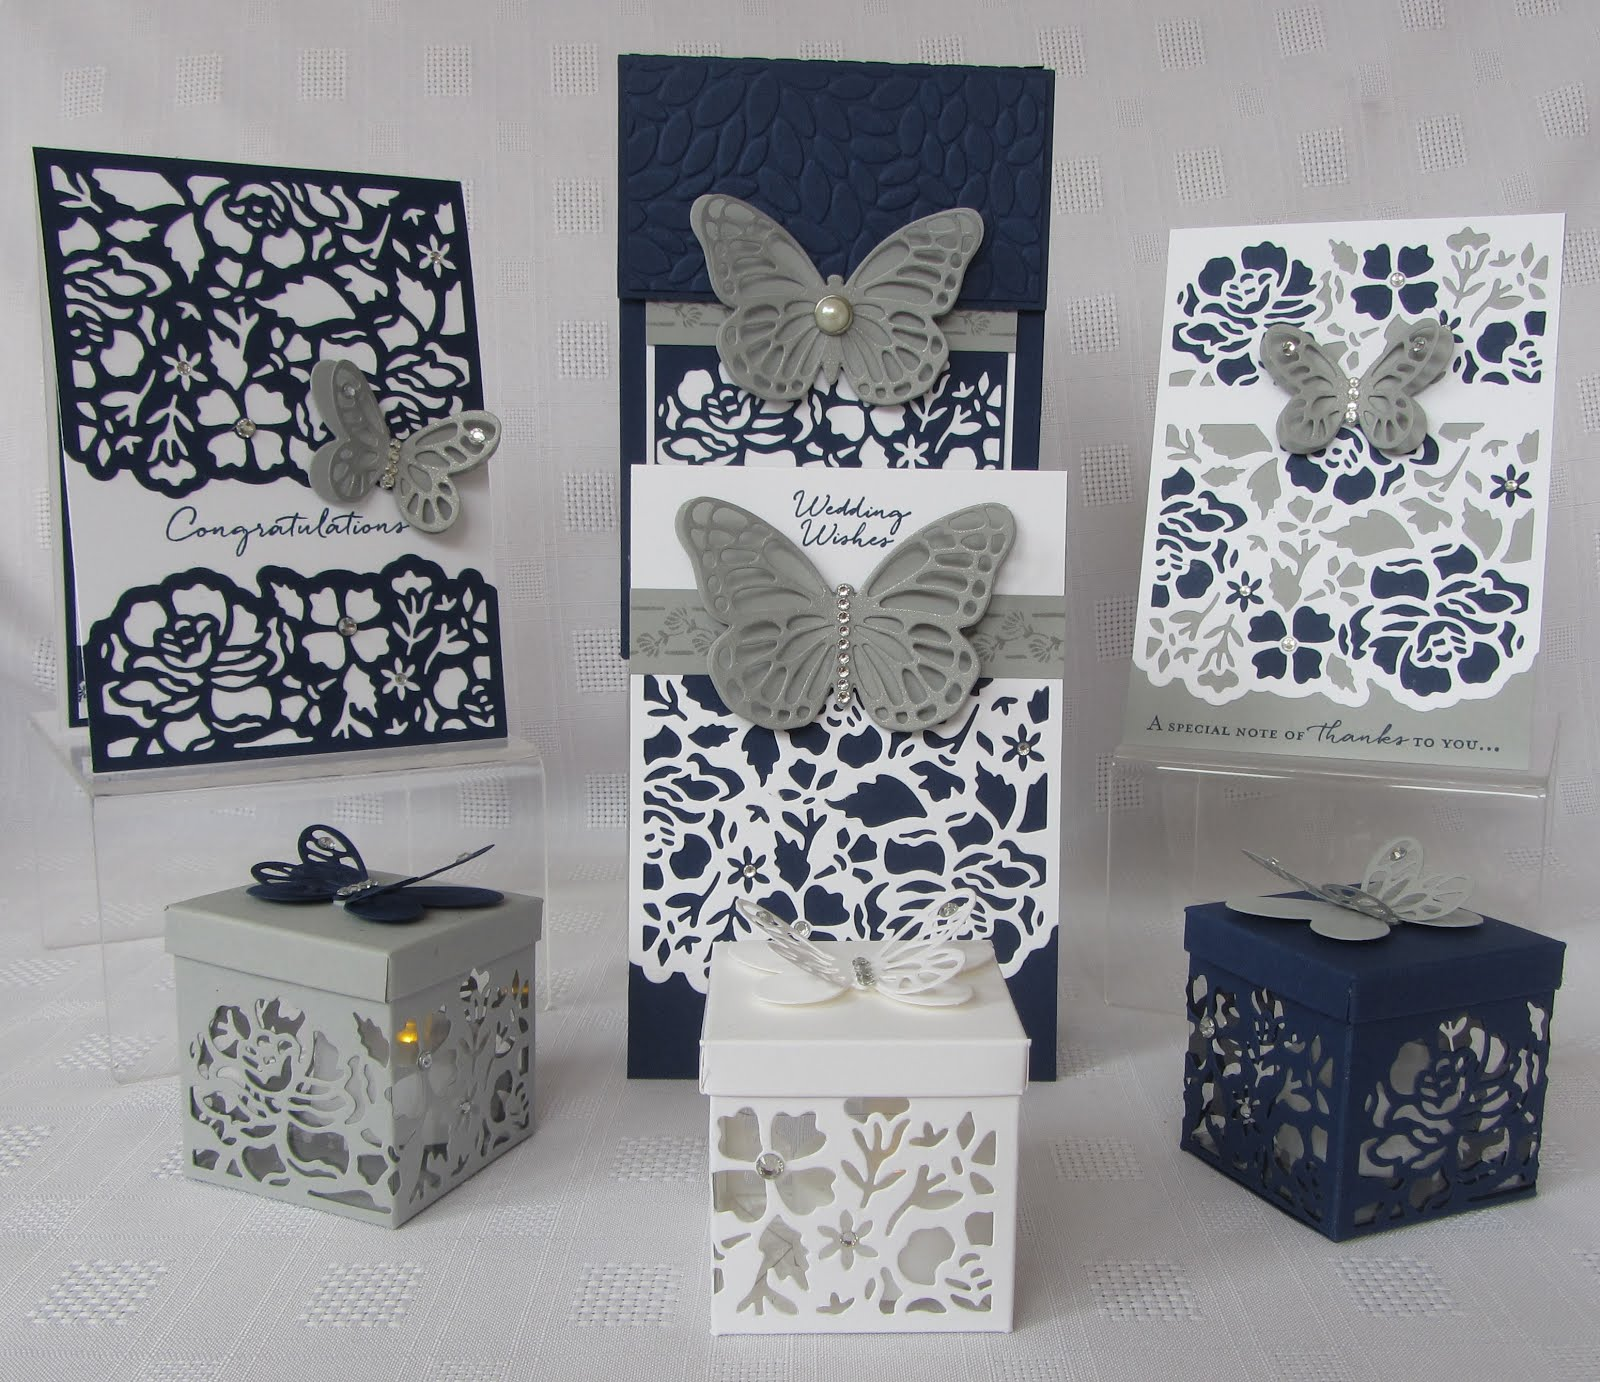 Floral Phrases & Detailed Floral Thinlits Stamp Class Instructions